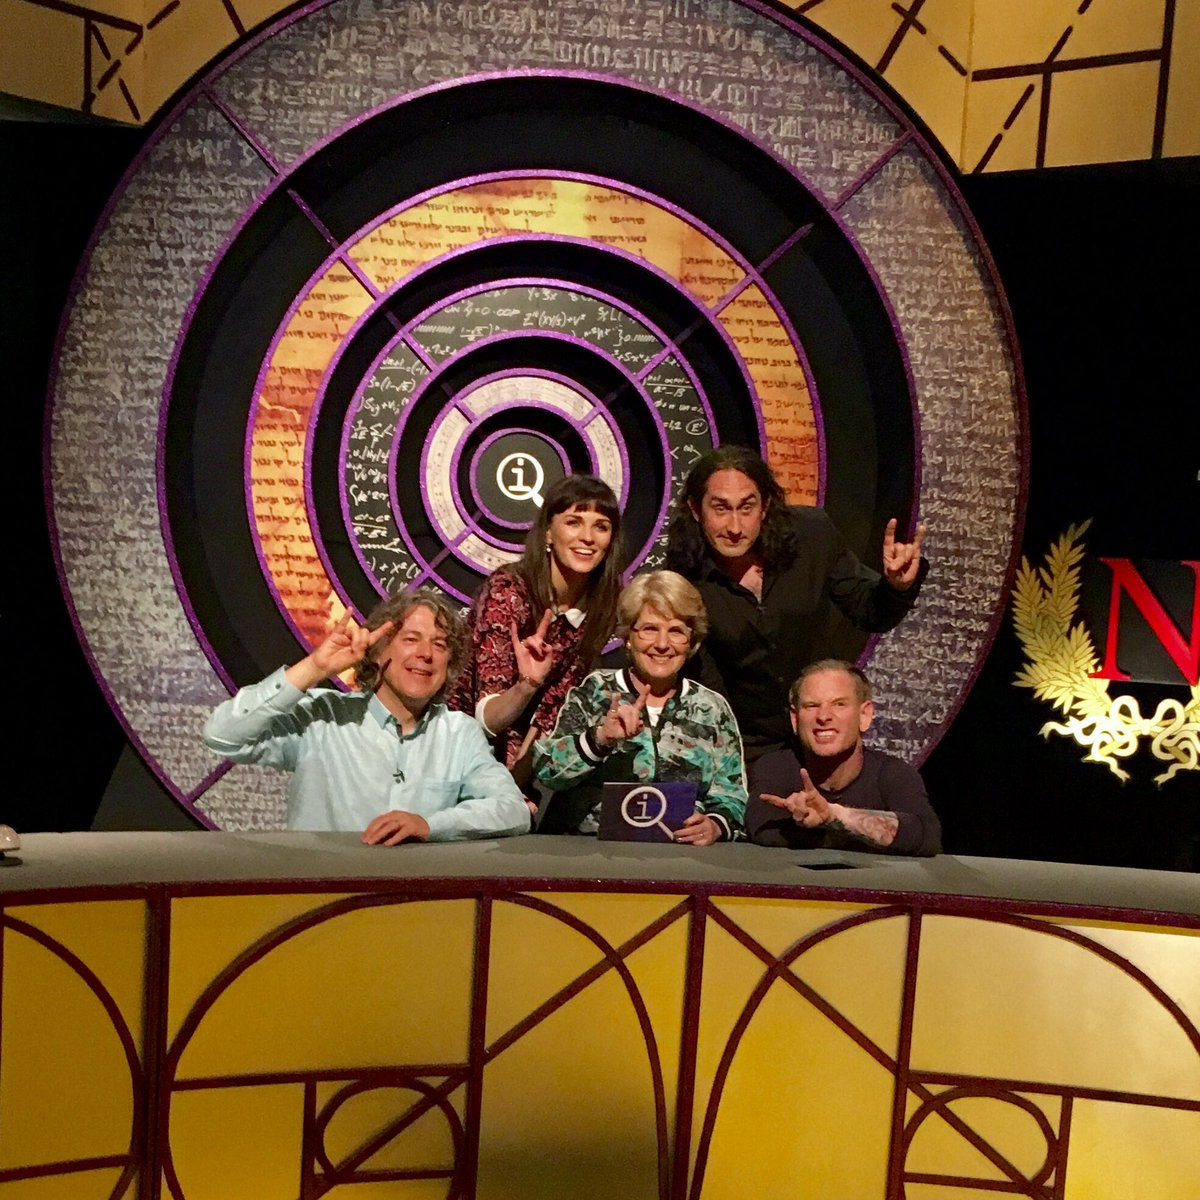 Dear SlipKnot fans, we've taken your leader & removed his mask. @CoreyTaylorRock @realrossnoble @sanditoksvig #Qi https://t.co/OXDM9IOQUx